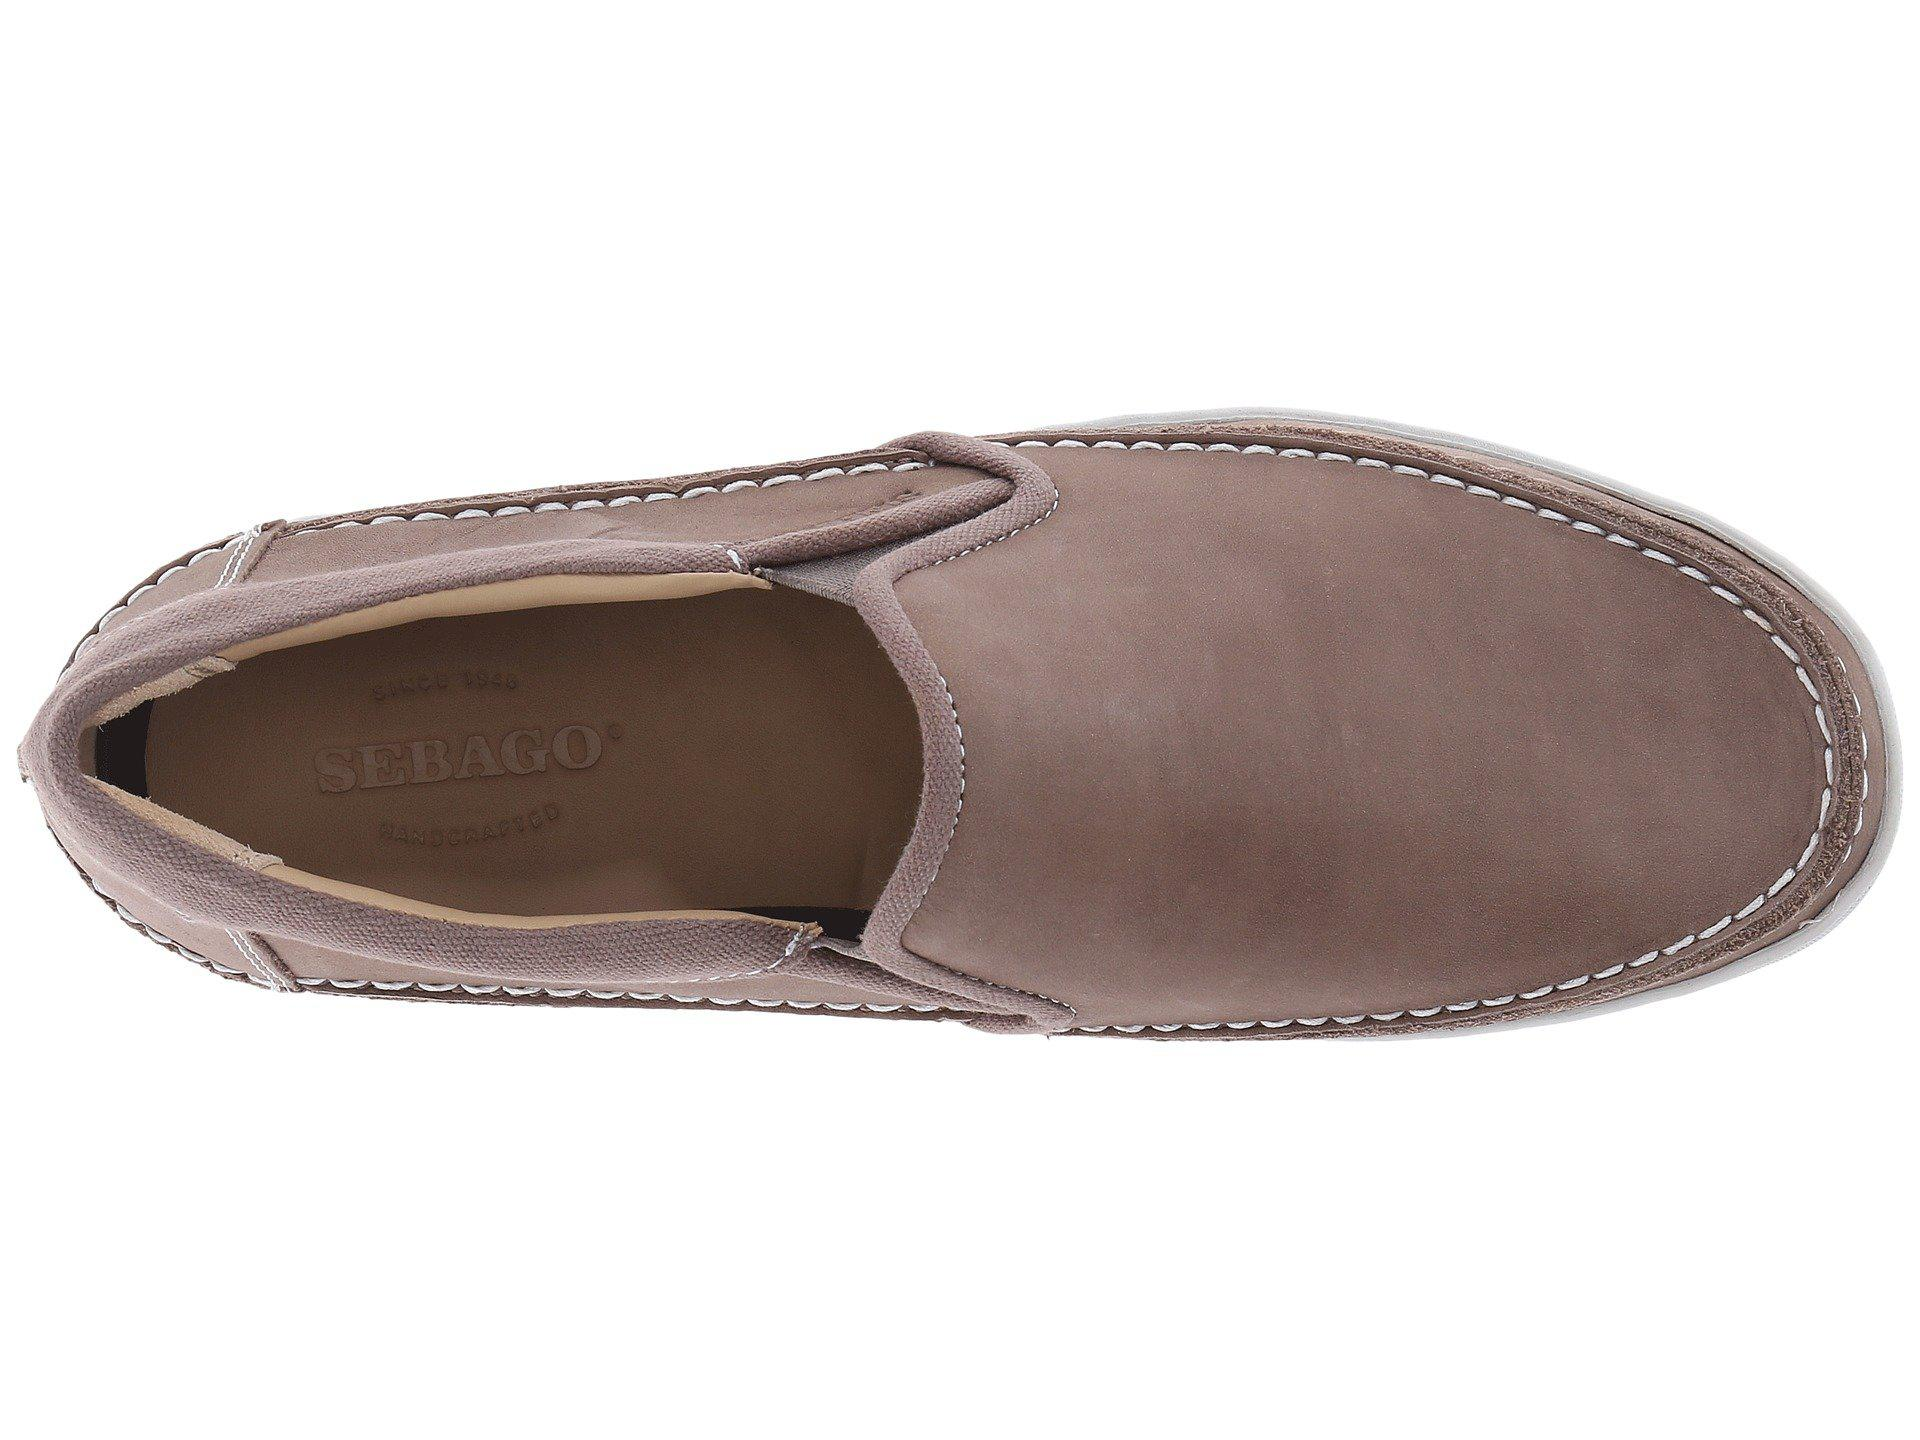 89e61dfbf5f18 Lyst - Sebago Ryde Slip-on in Brown for Men